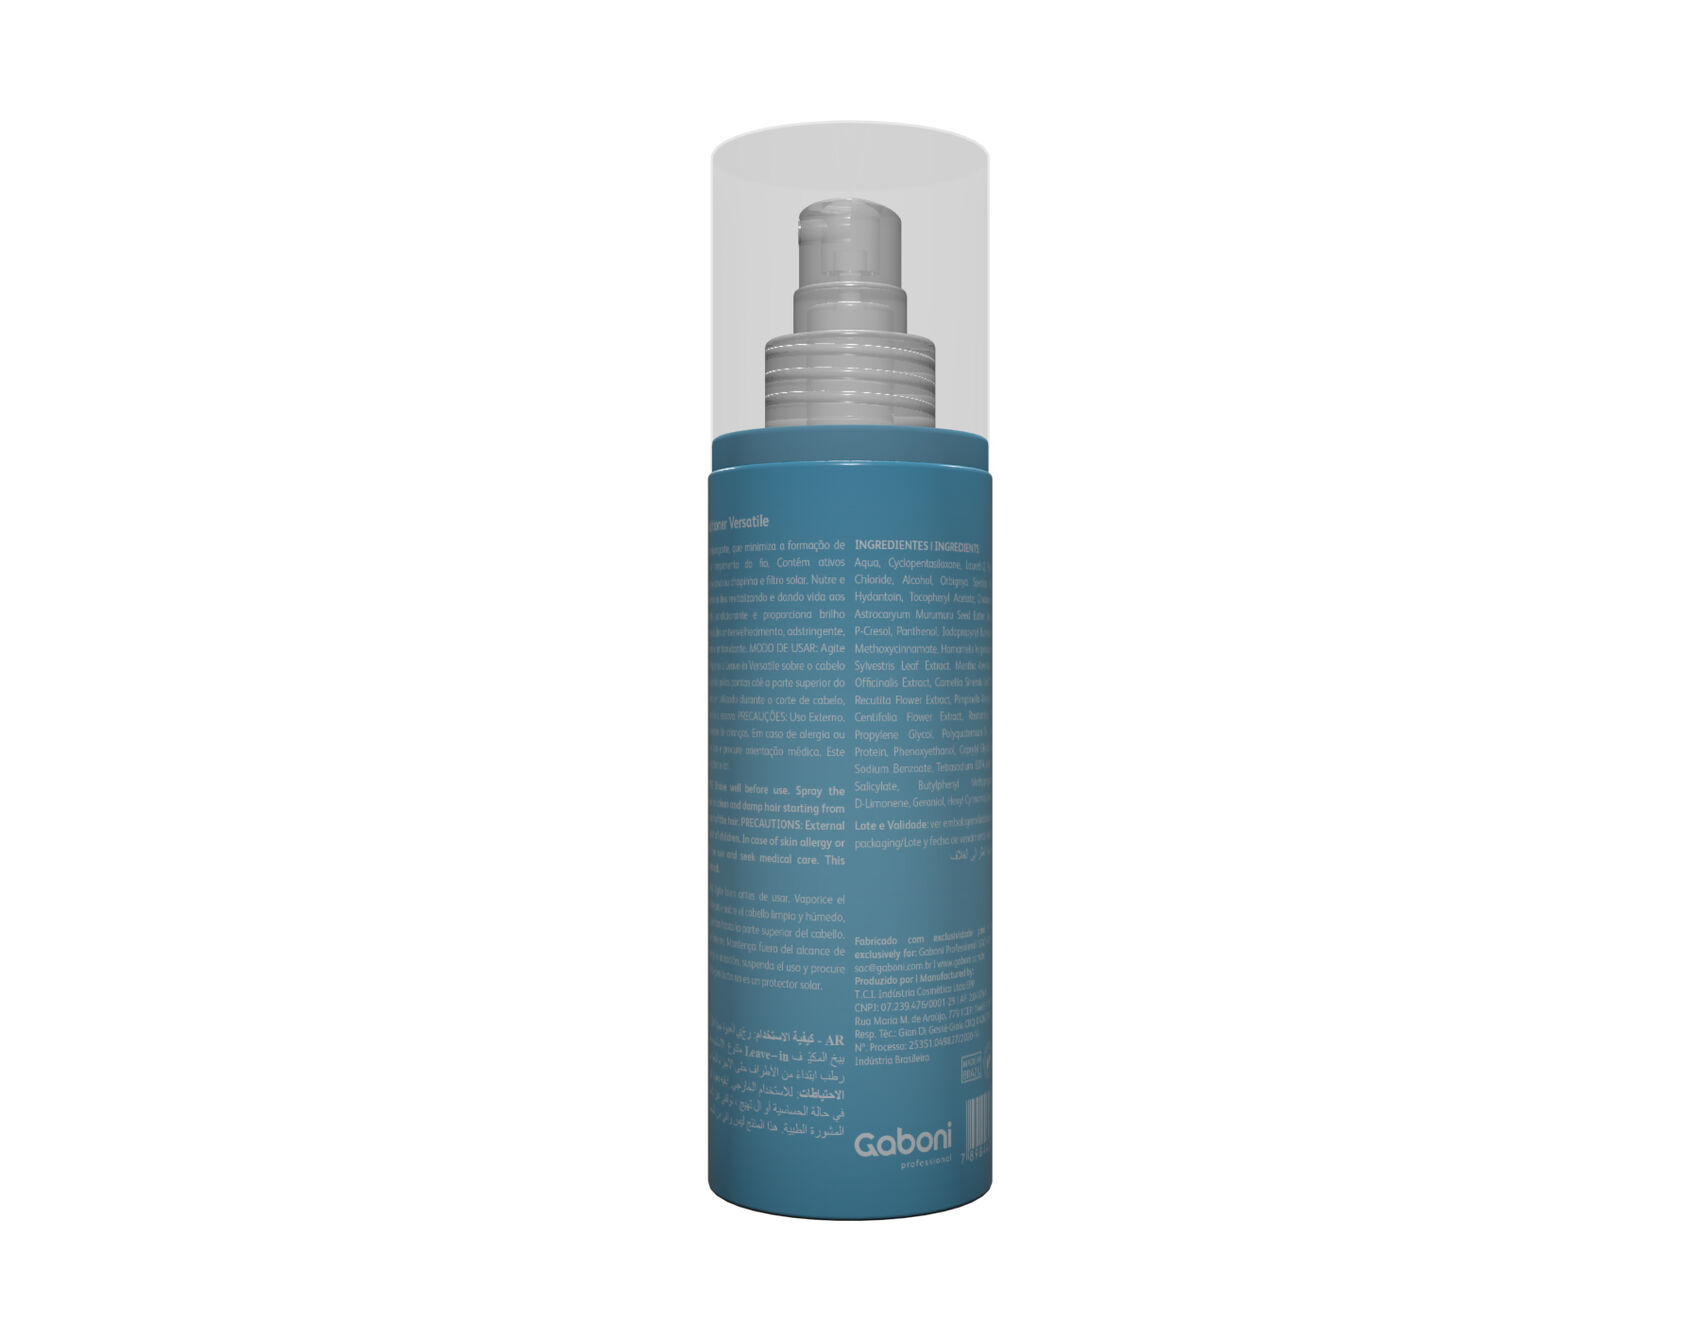 GB PRO Leave-in Versatile 200ml + Necessaire